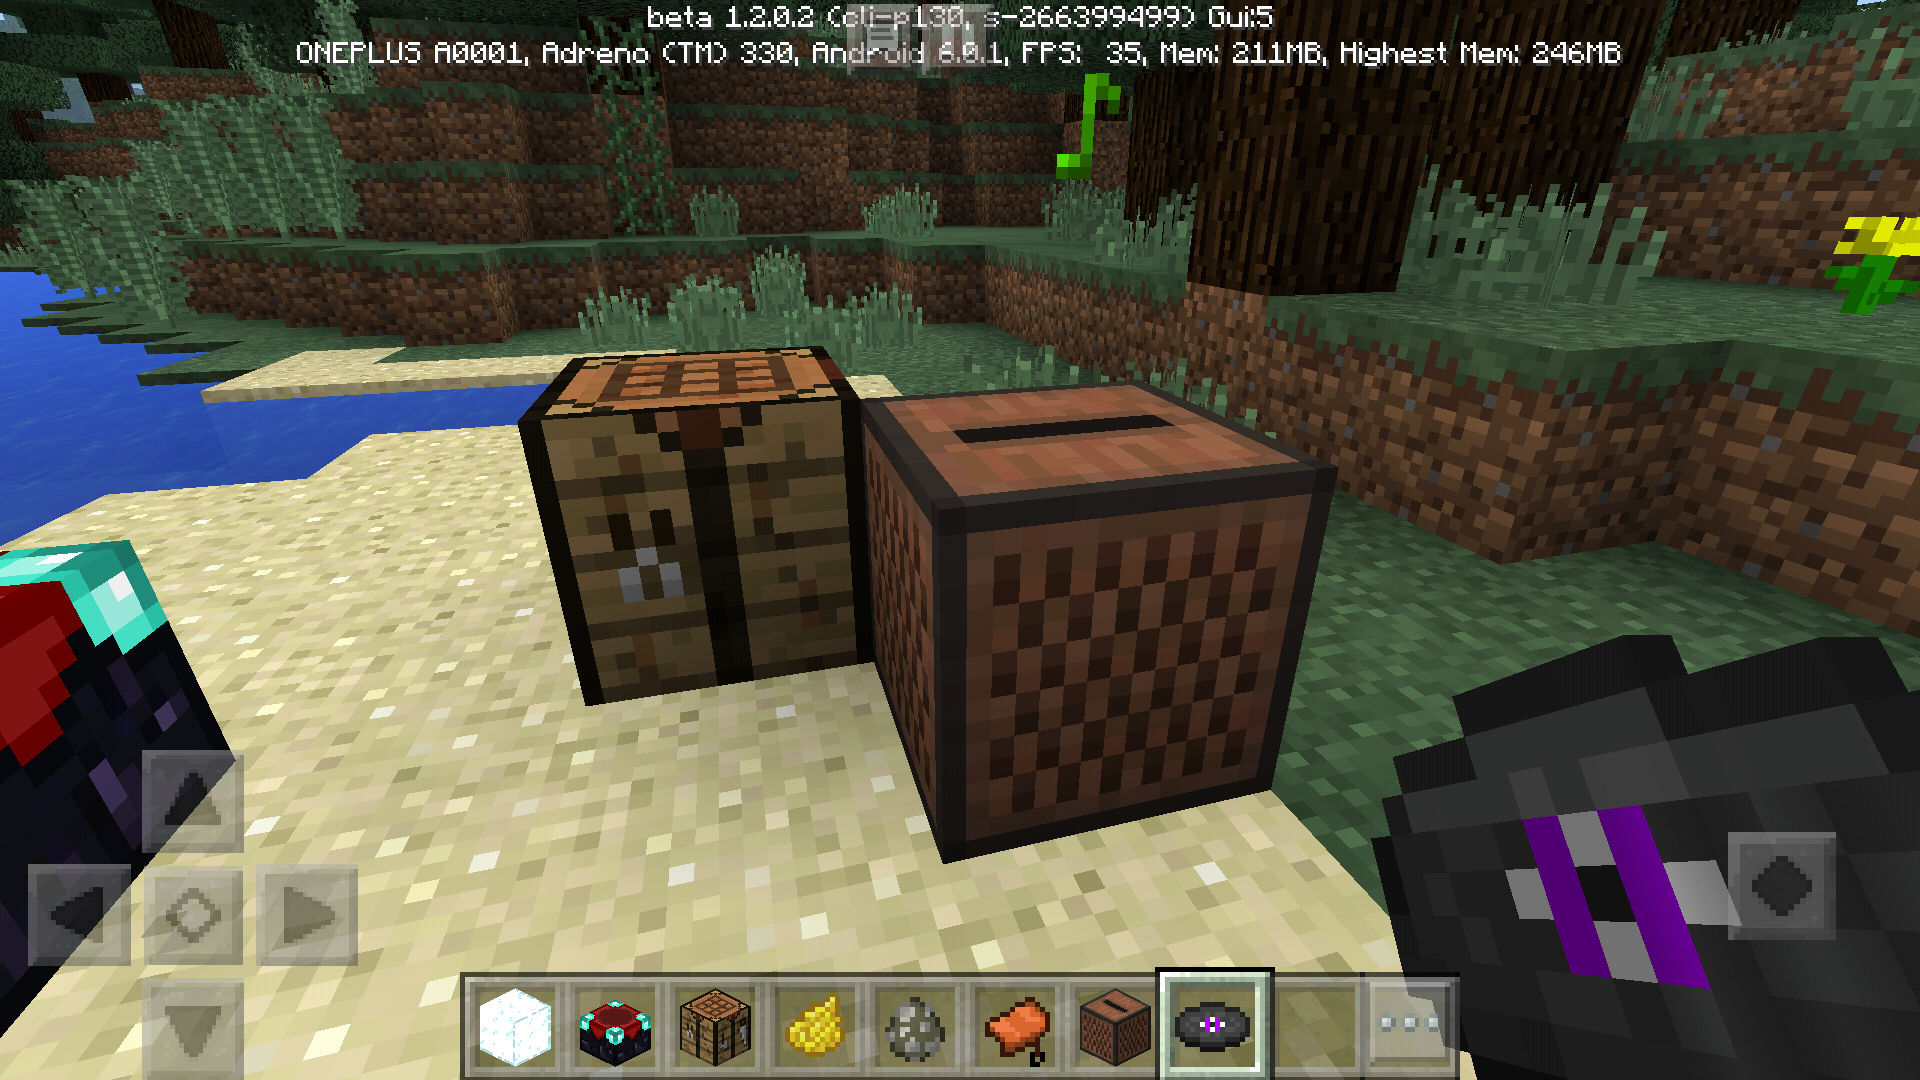 MCPE-23761] No sounds/music coming from the jukebox  - Jira